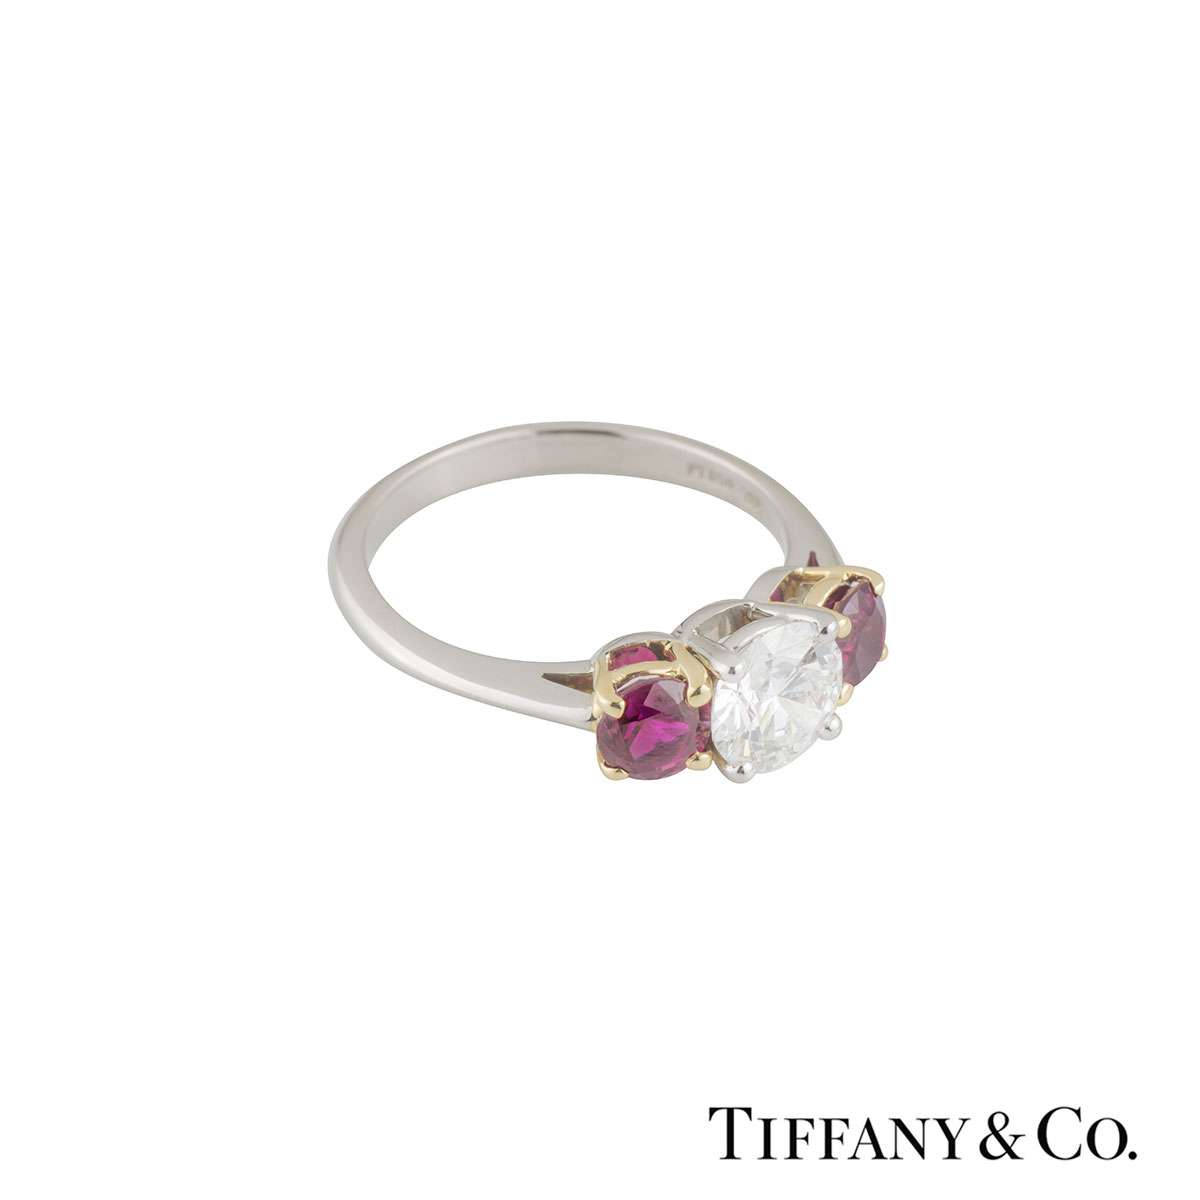 Tiffany & Co. Three Stone Diamond and Ruby Platinum Ring 1.26ct, G/VVS2